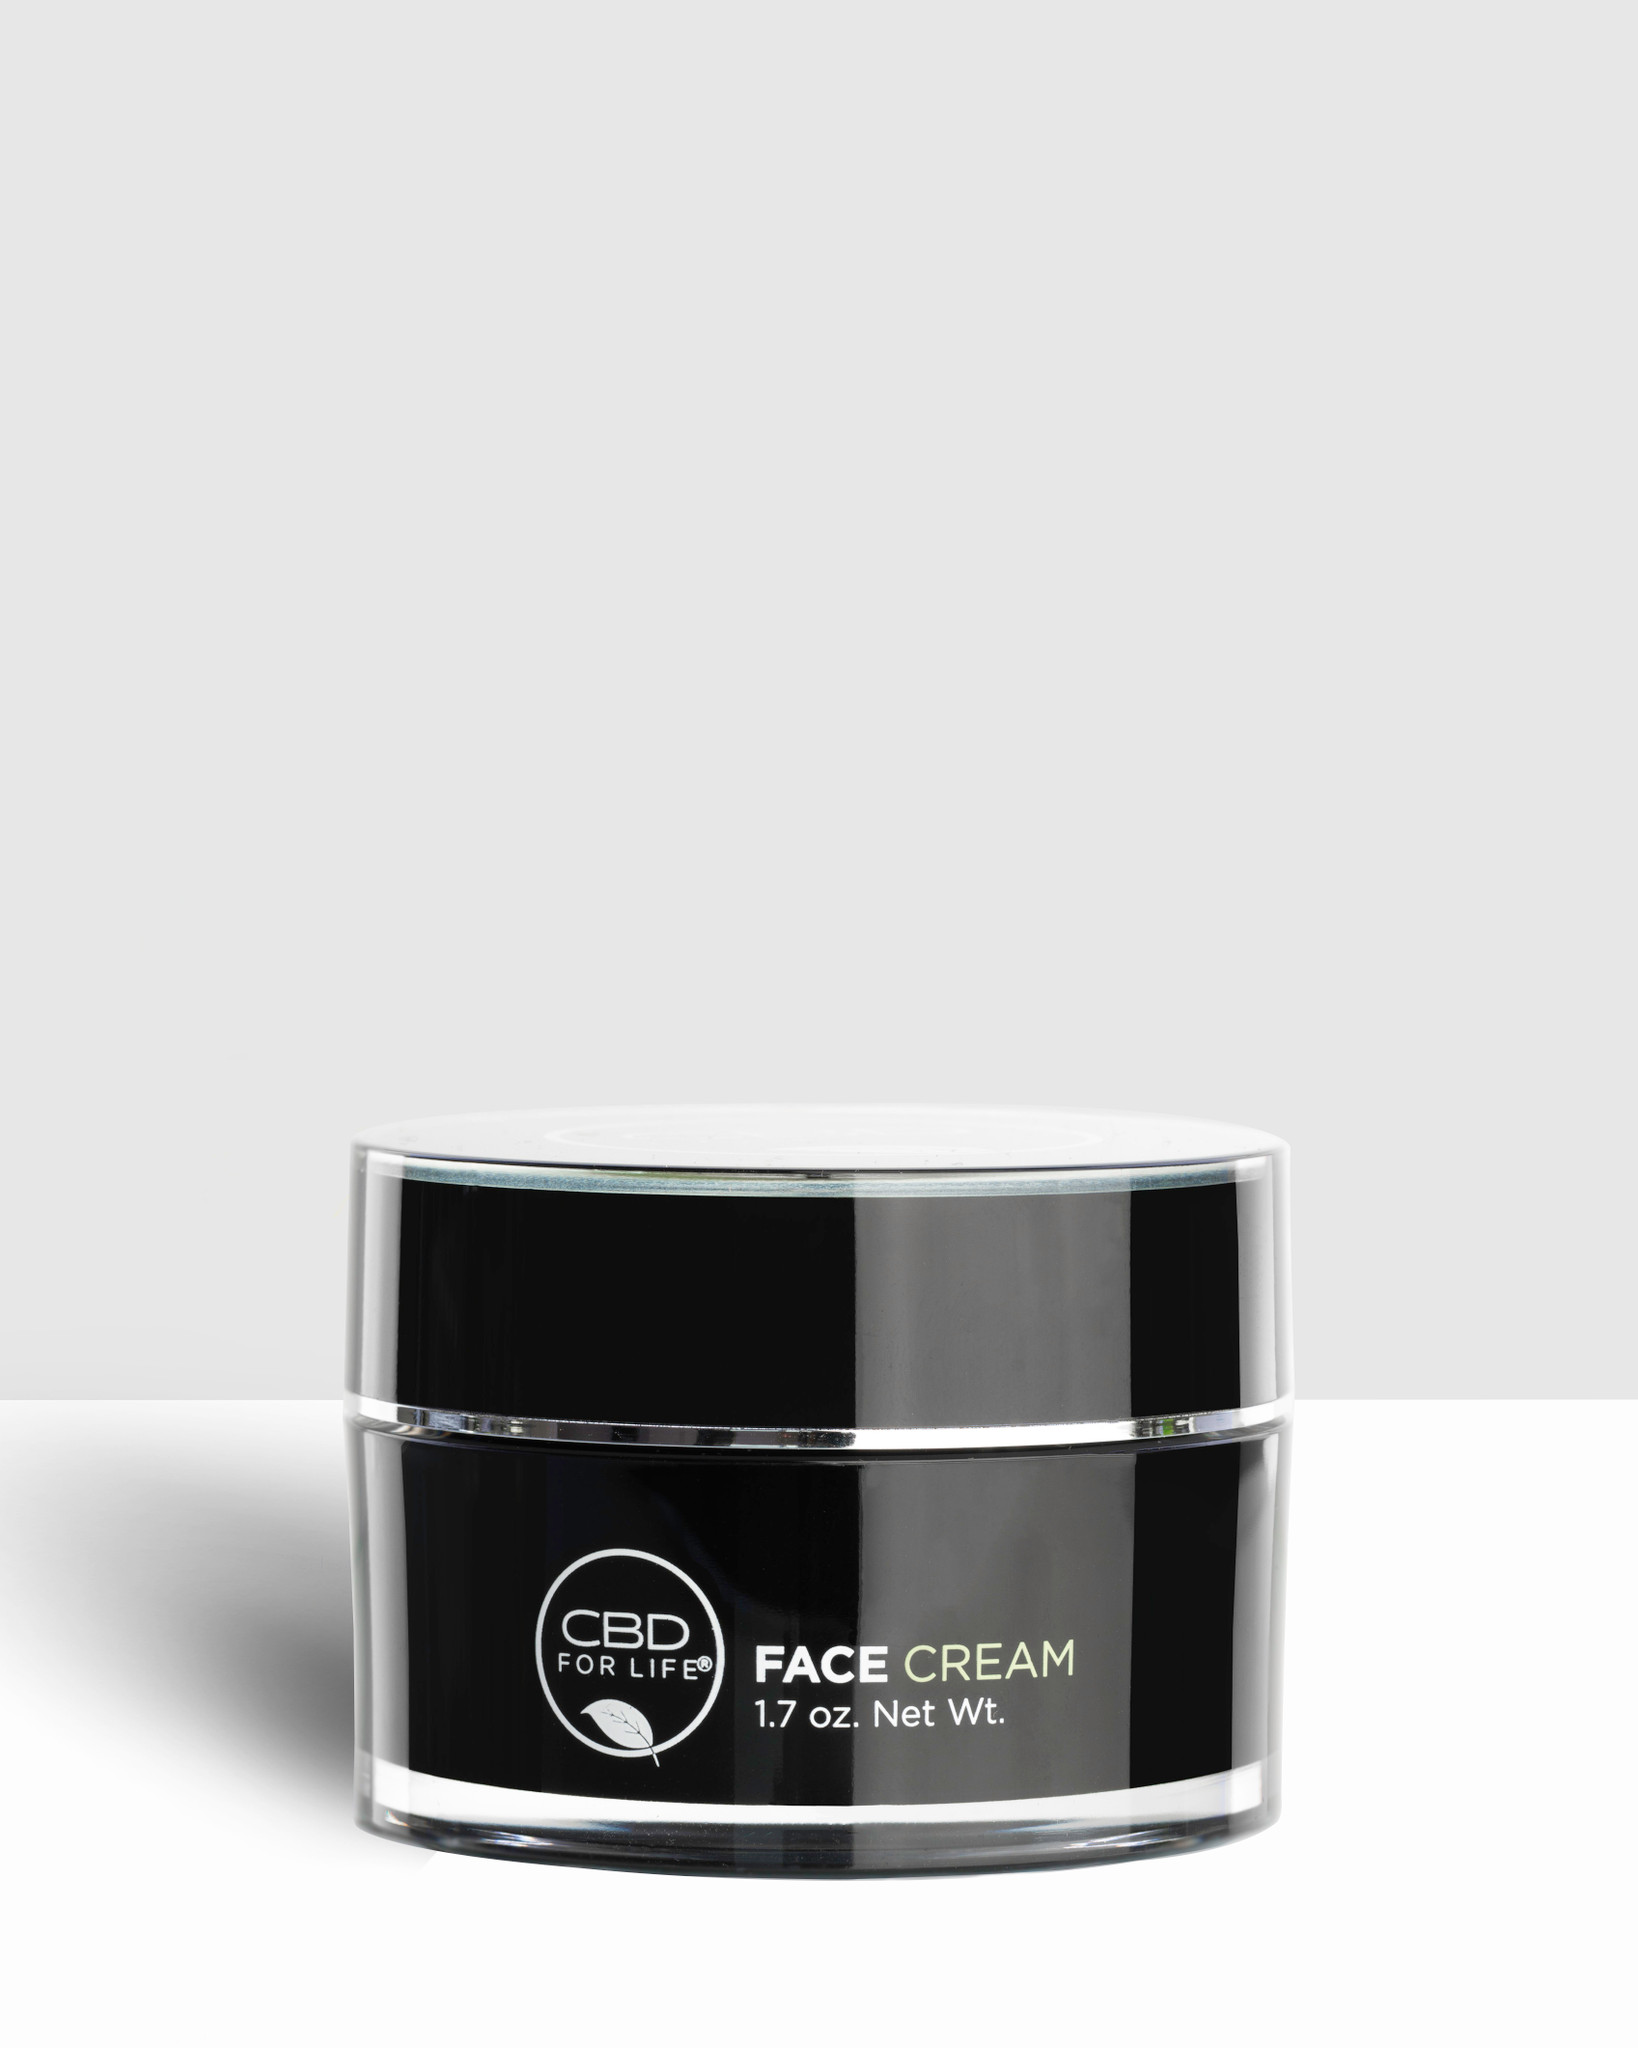 Meet your new favorite face cream. We blend phytonutrient-rich CBD with  moisture-boosting hyaluronic acid, among other skin-loving ingredients, to help hydrate and comfort your complexion. Apply our CBD Face Cream morning and night, for skin that naturally glows. Our CBD Face Cream addresses multiple skin issues. Dry skin can benefit from our CBD Face Cream thanks to its moisture-boosting benefits. Skin that is experiencing redness may also benefit. CBD is known to help balance and bring the body back to homeostasis. Our CBD Face Cream is one of our best-selling products. The reviews for our CBD Face Cream speak for themselves. Men and women use and love our CBD Face Cream. CBD is an amazing ingredient that is proving to provide wonderful benefits as it relates to the skin. CBD is already transforming wellness and CBD is about to change how we treat our skin.